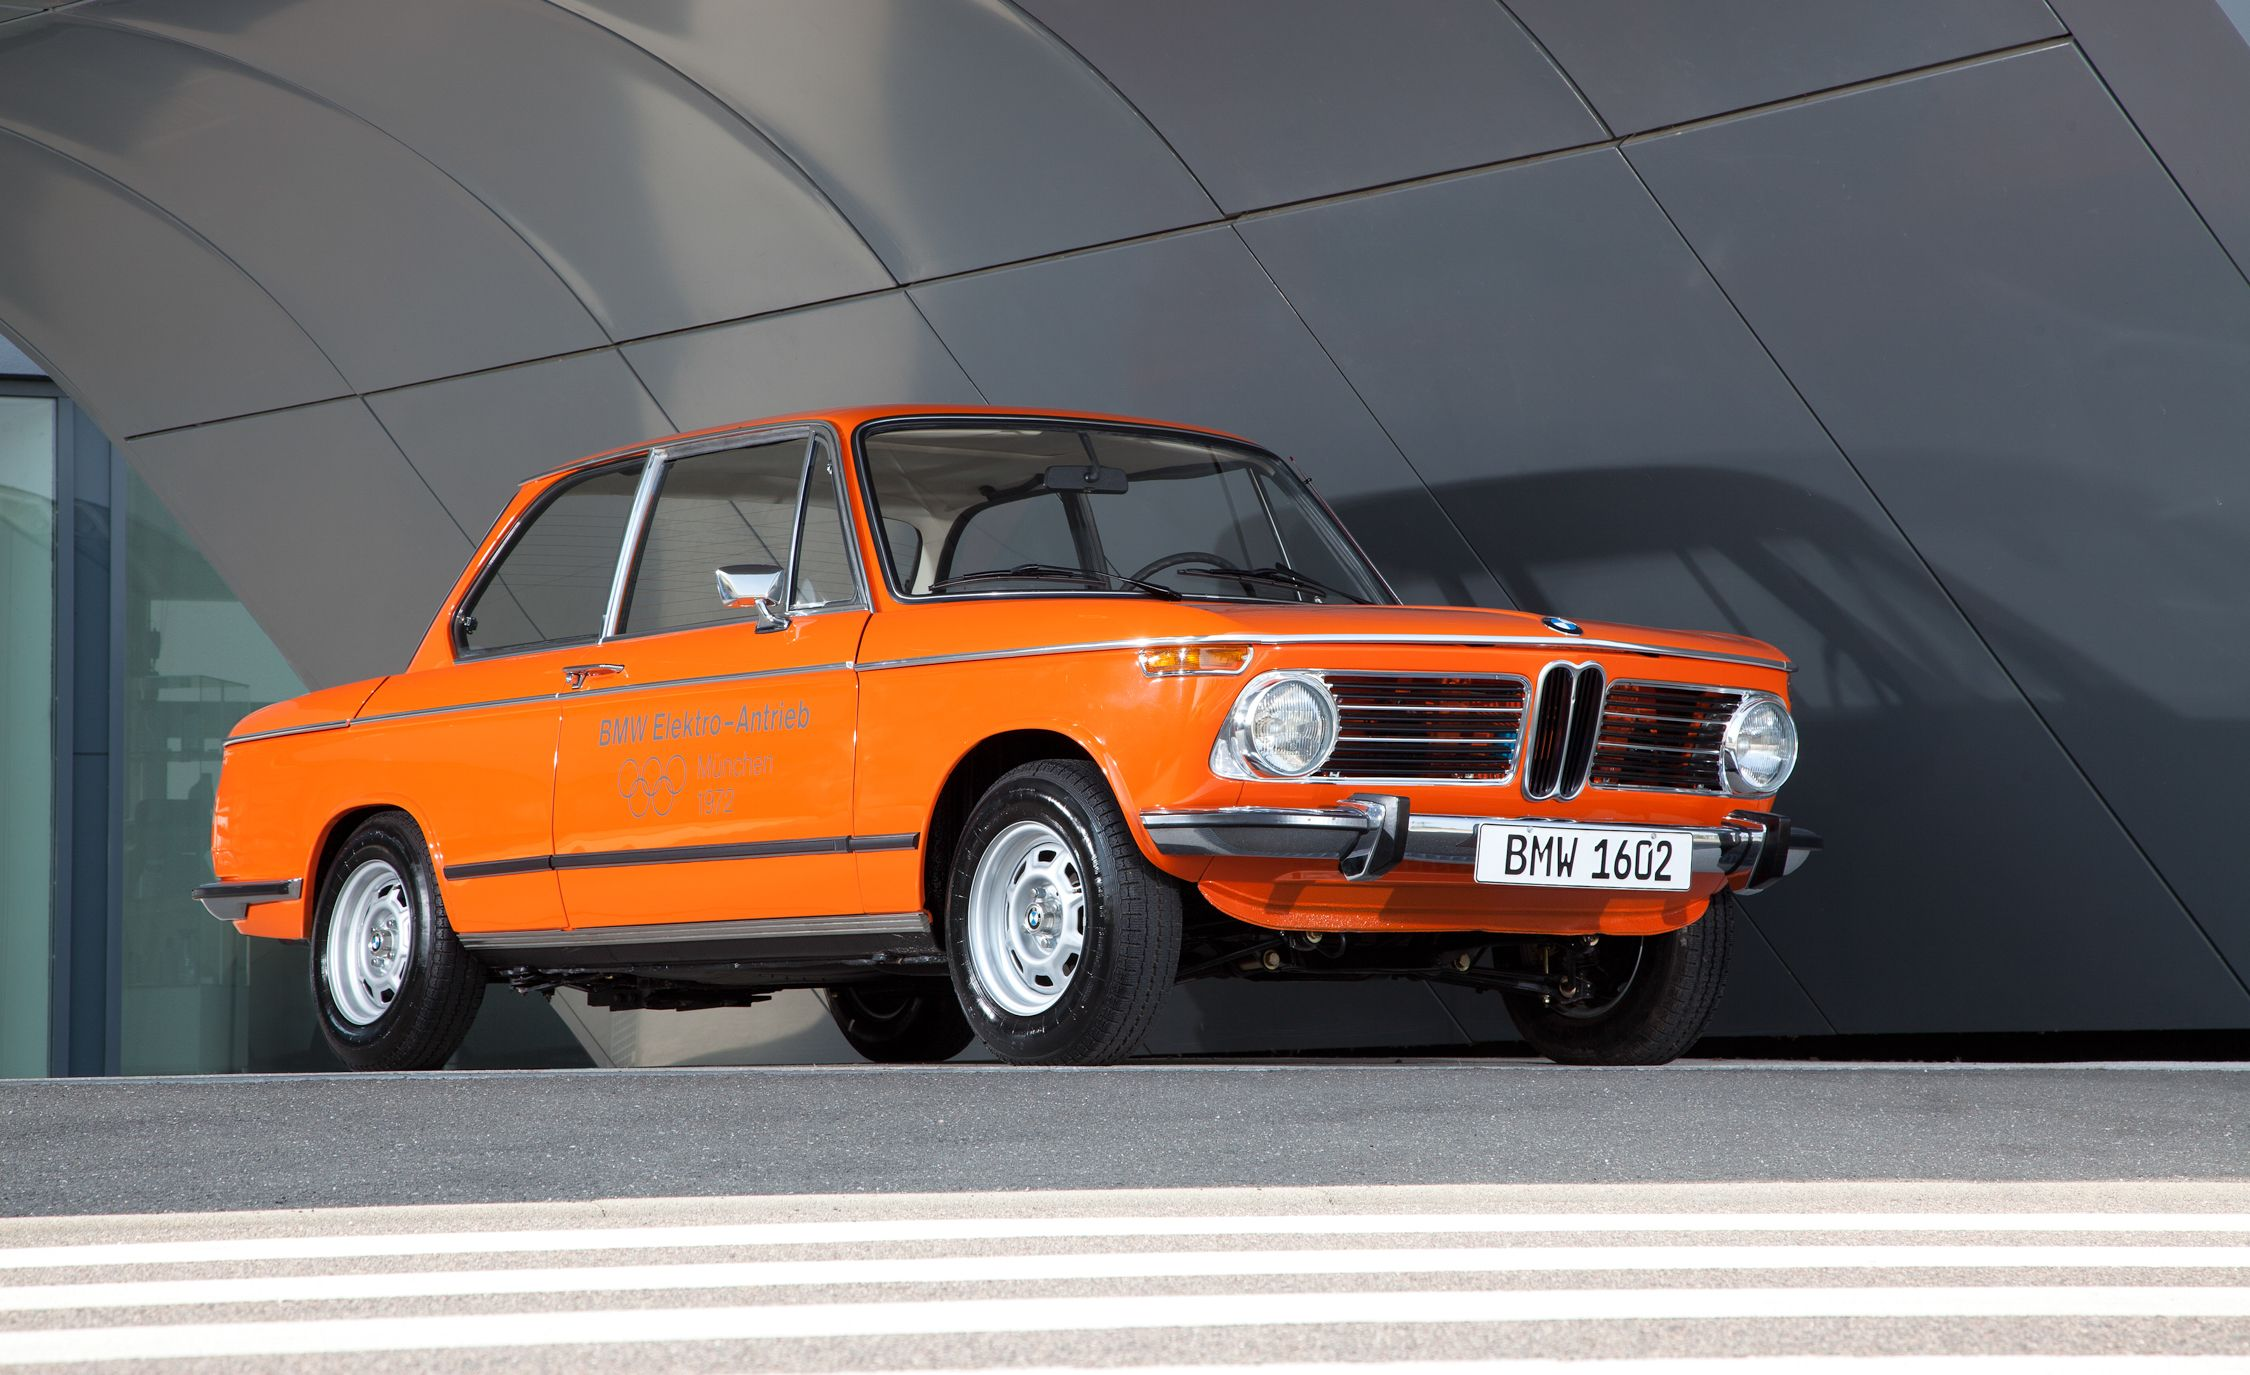 Orange Juiced Bmw S First Ev Paved The Way For The Amid An